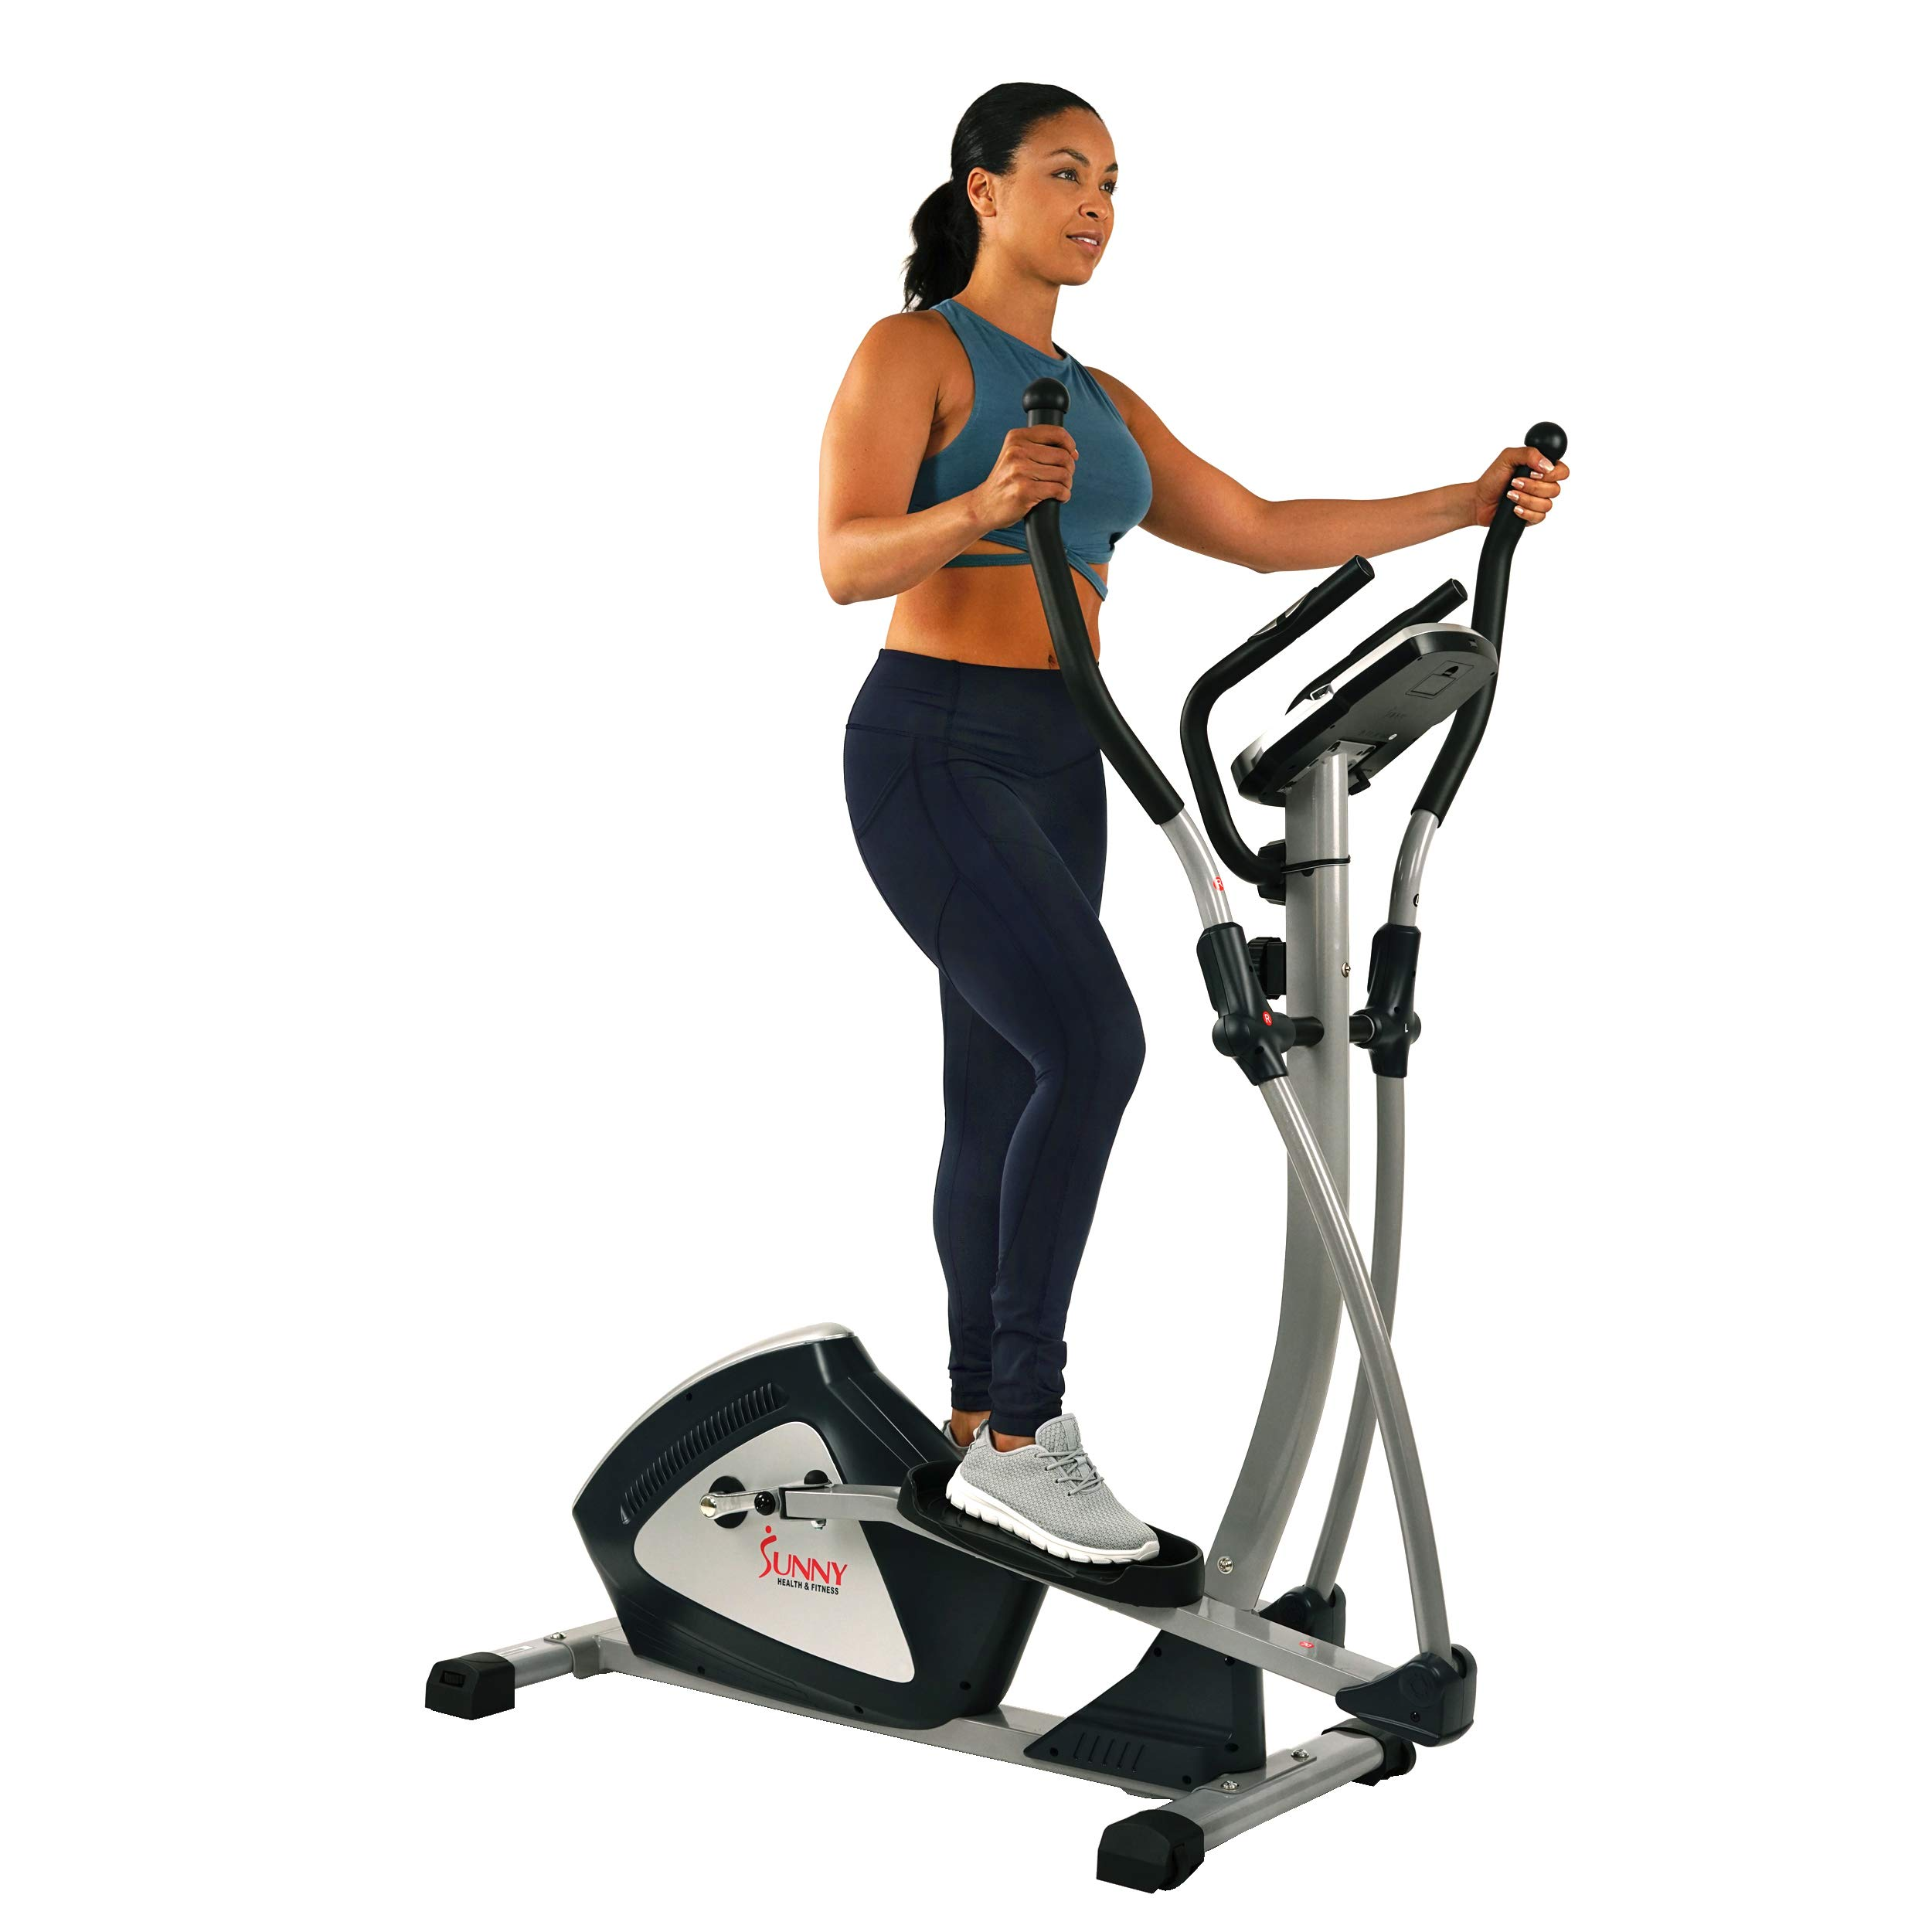 Sunny Health & Fitness Magnetic Elliptical Trainer Elliptical Machine w/  LCD Monitor and Heart Rate Monitoring - Endurance Zone - SF-E3804 by Sunny Health & Fitness (Image #3)